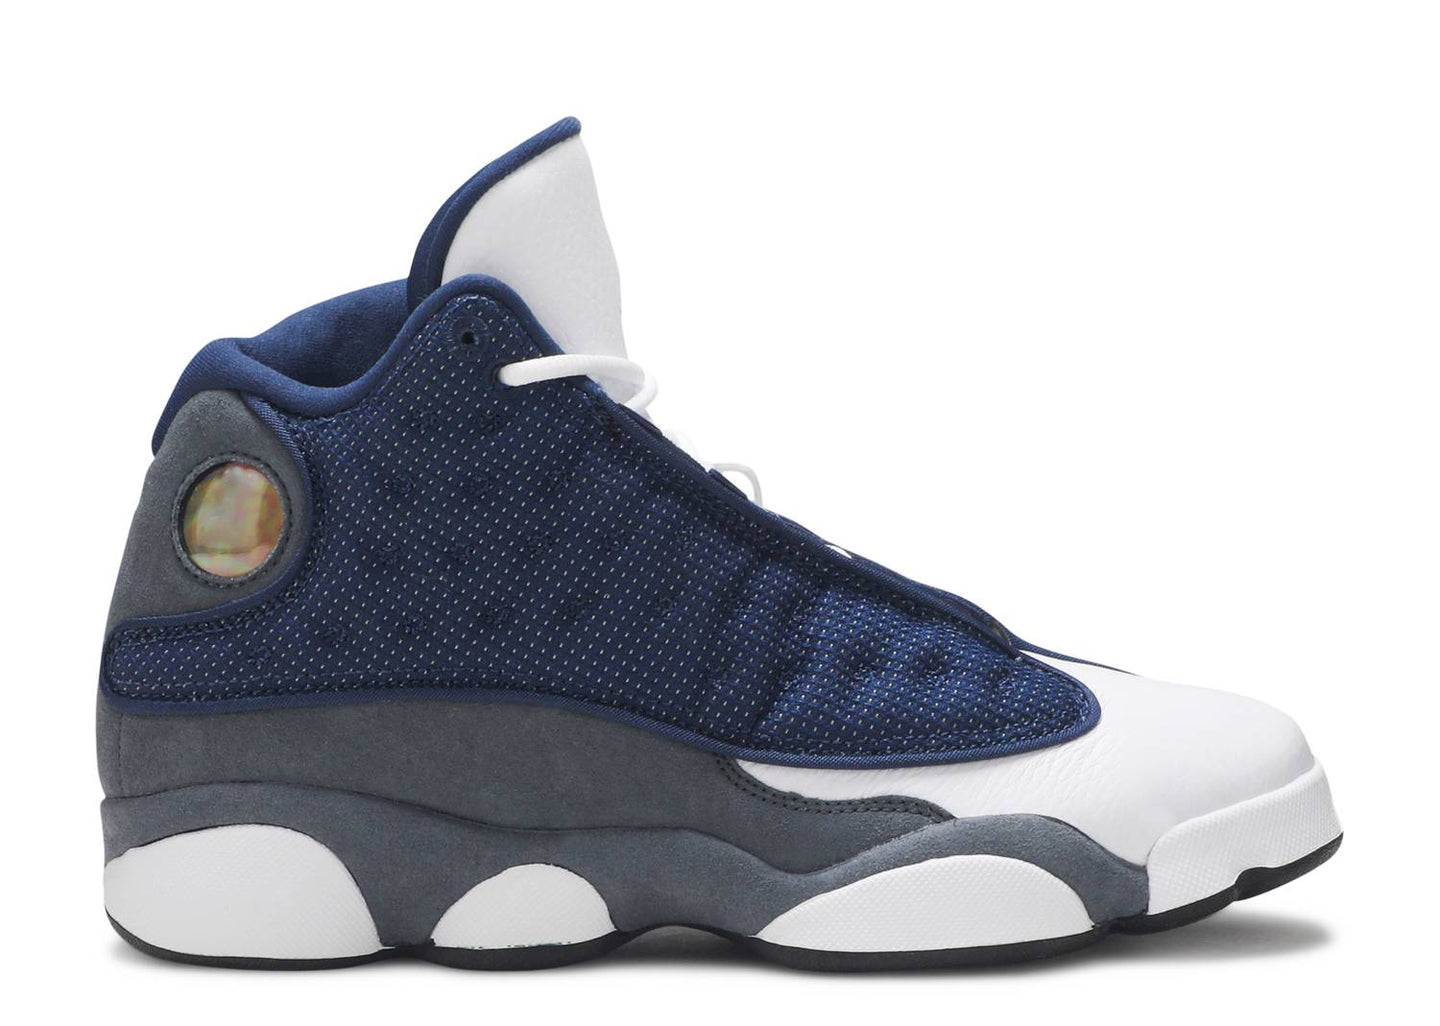 Air Jordan 13 Retro Flint 2020 (GS)